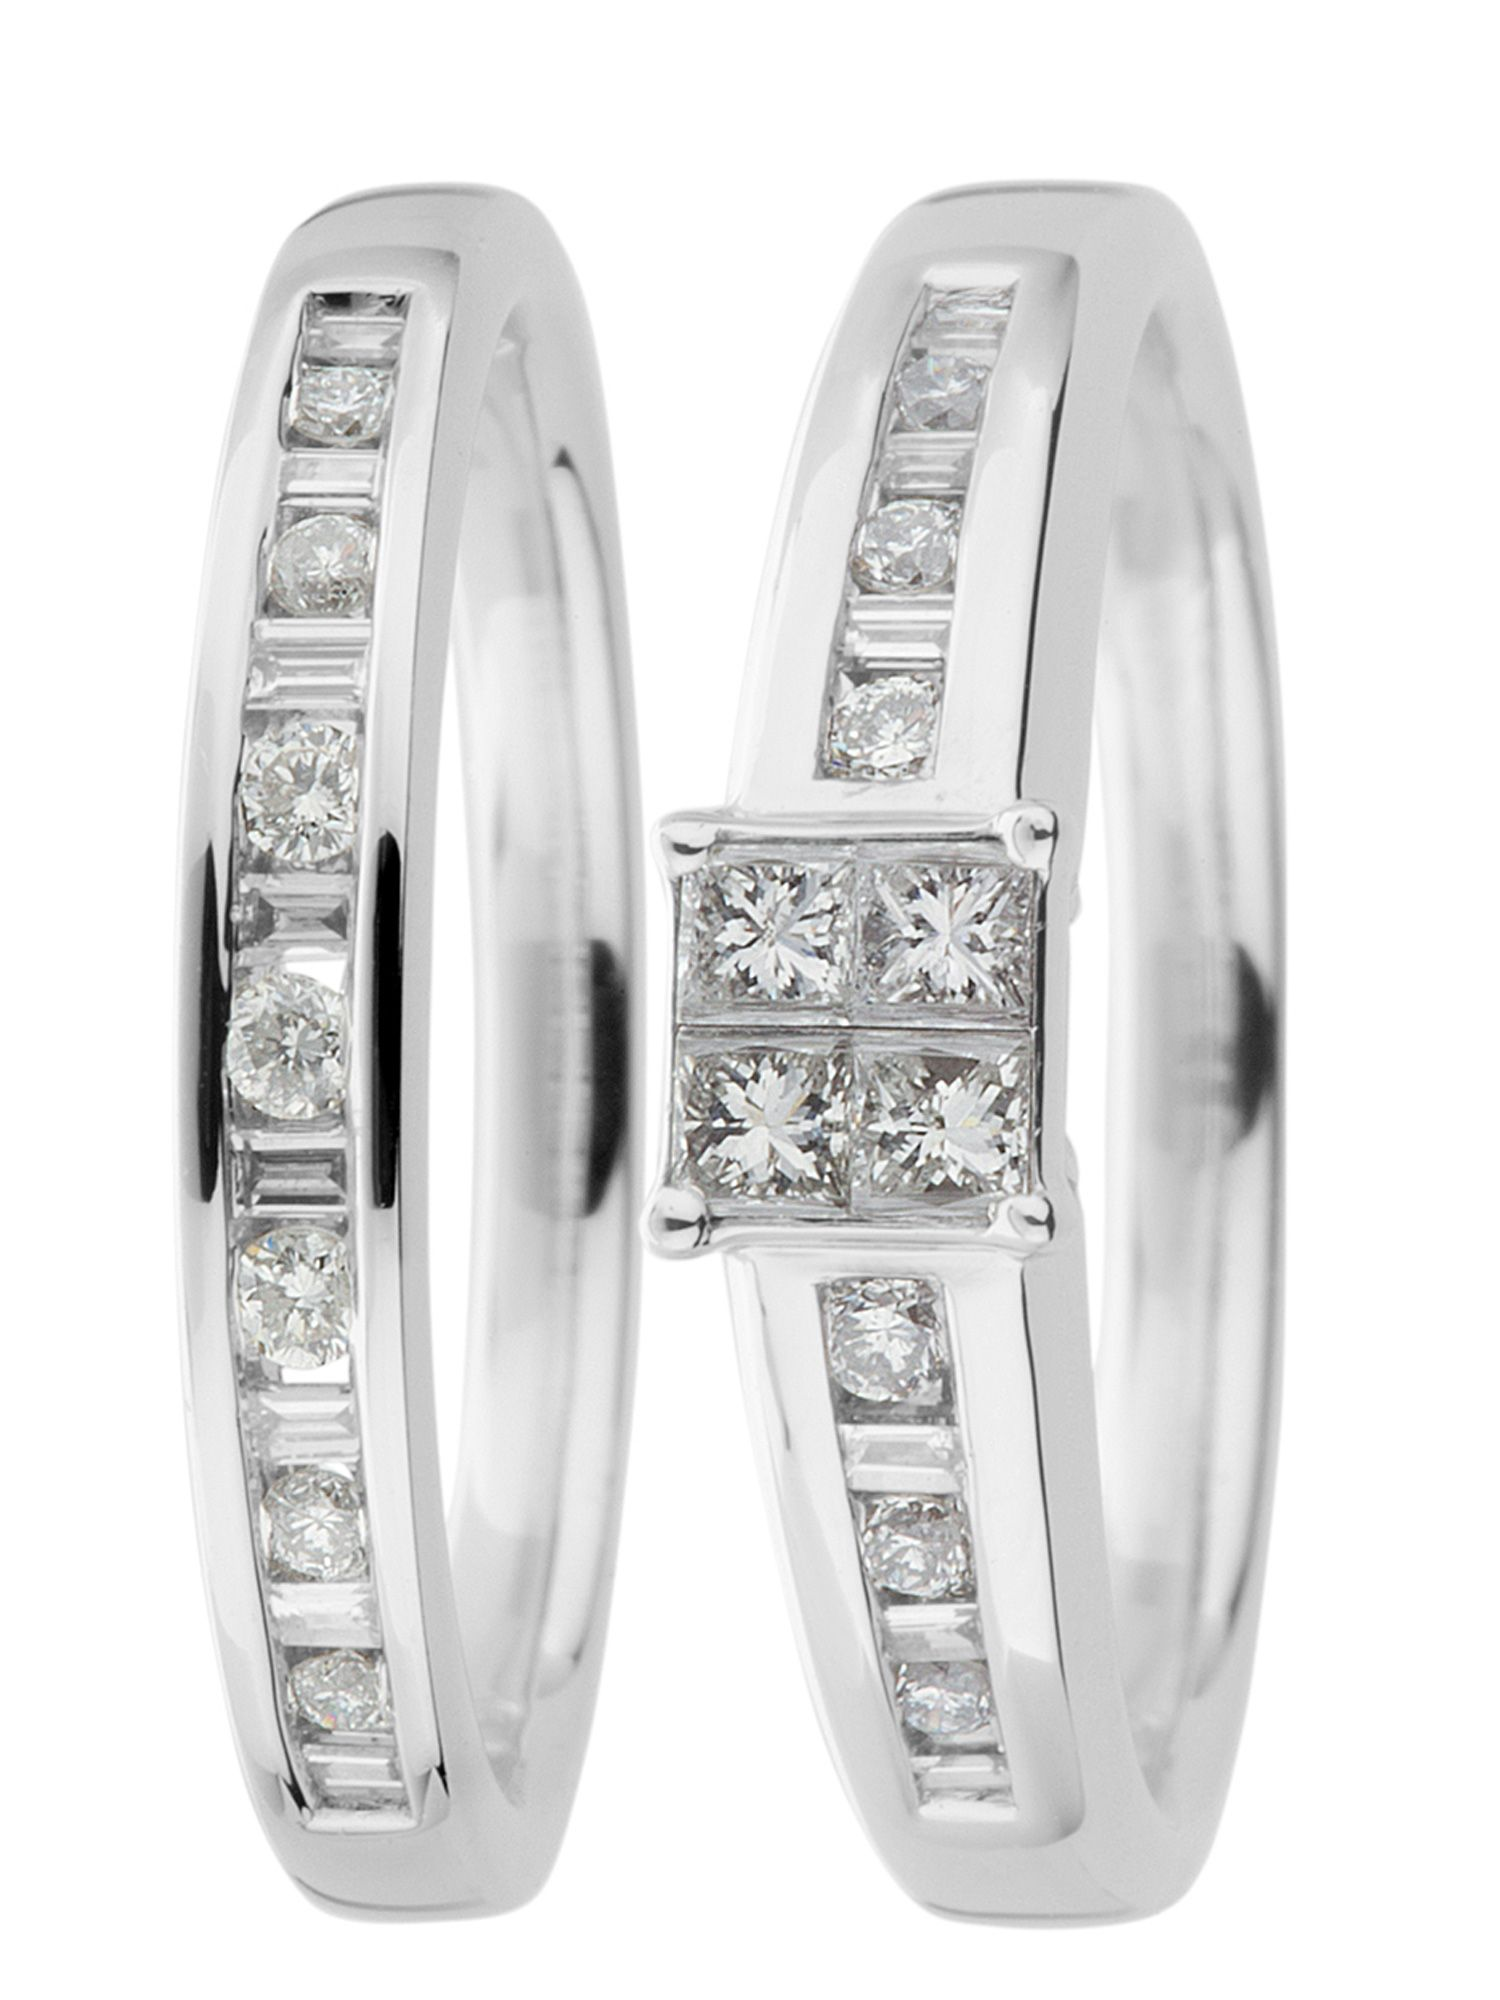 18ct gold 1.00ct, i1 clarity diamond wedding set